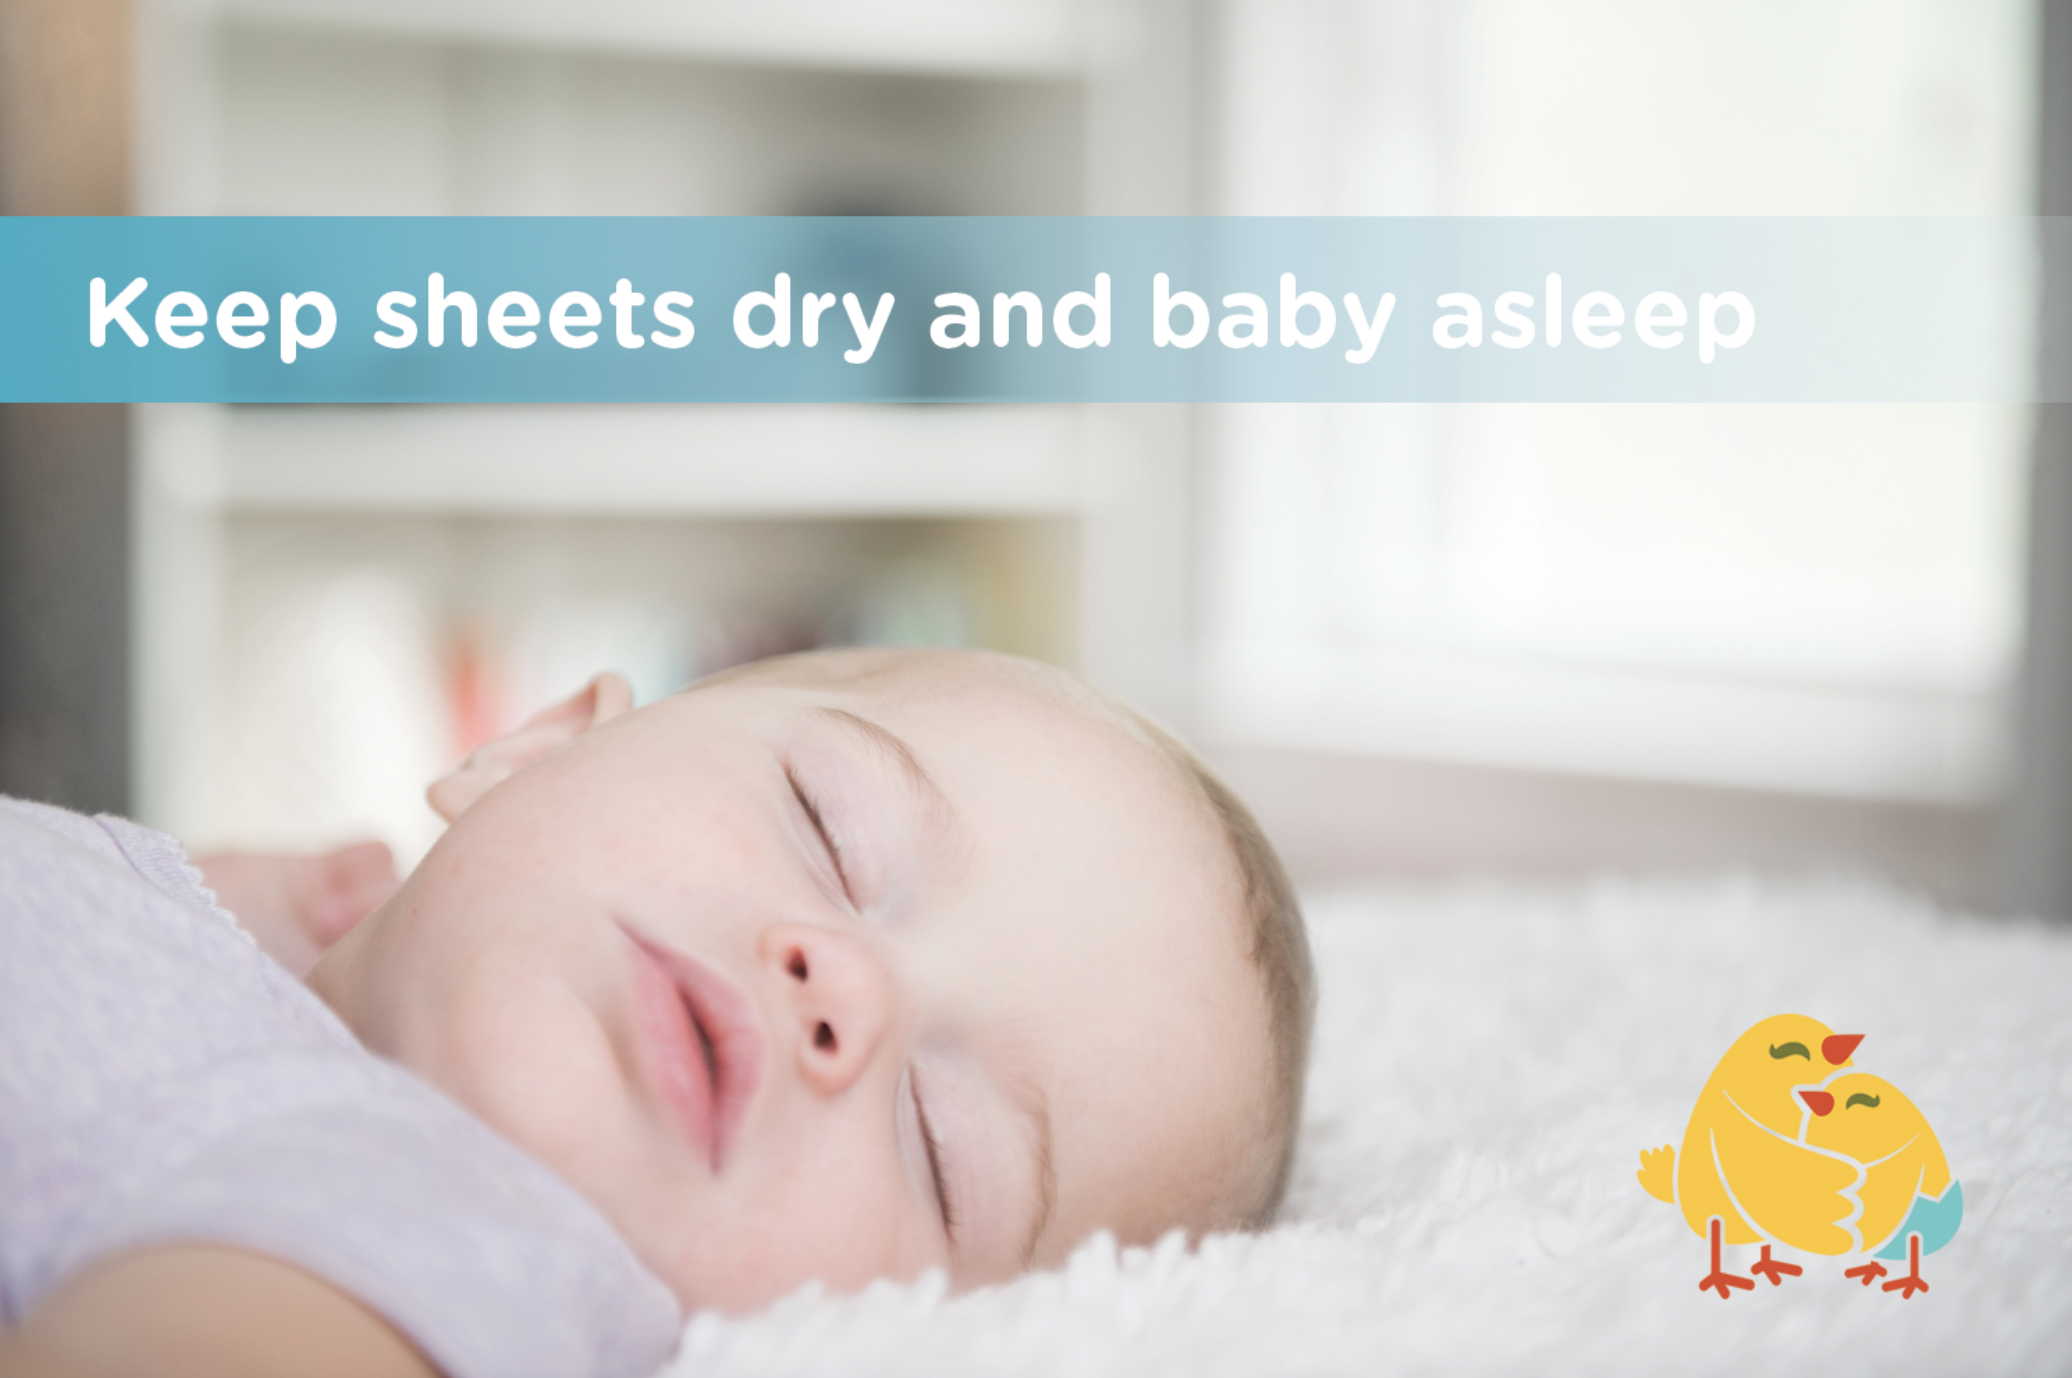 Sposie diaper booster pads are super-absorbent diaper inserts that completely stop night time diaper leaks so you, your baby, and your whole family can enjoy uninterrupted sleep each night.